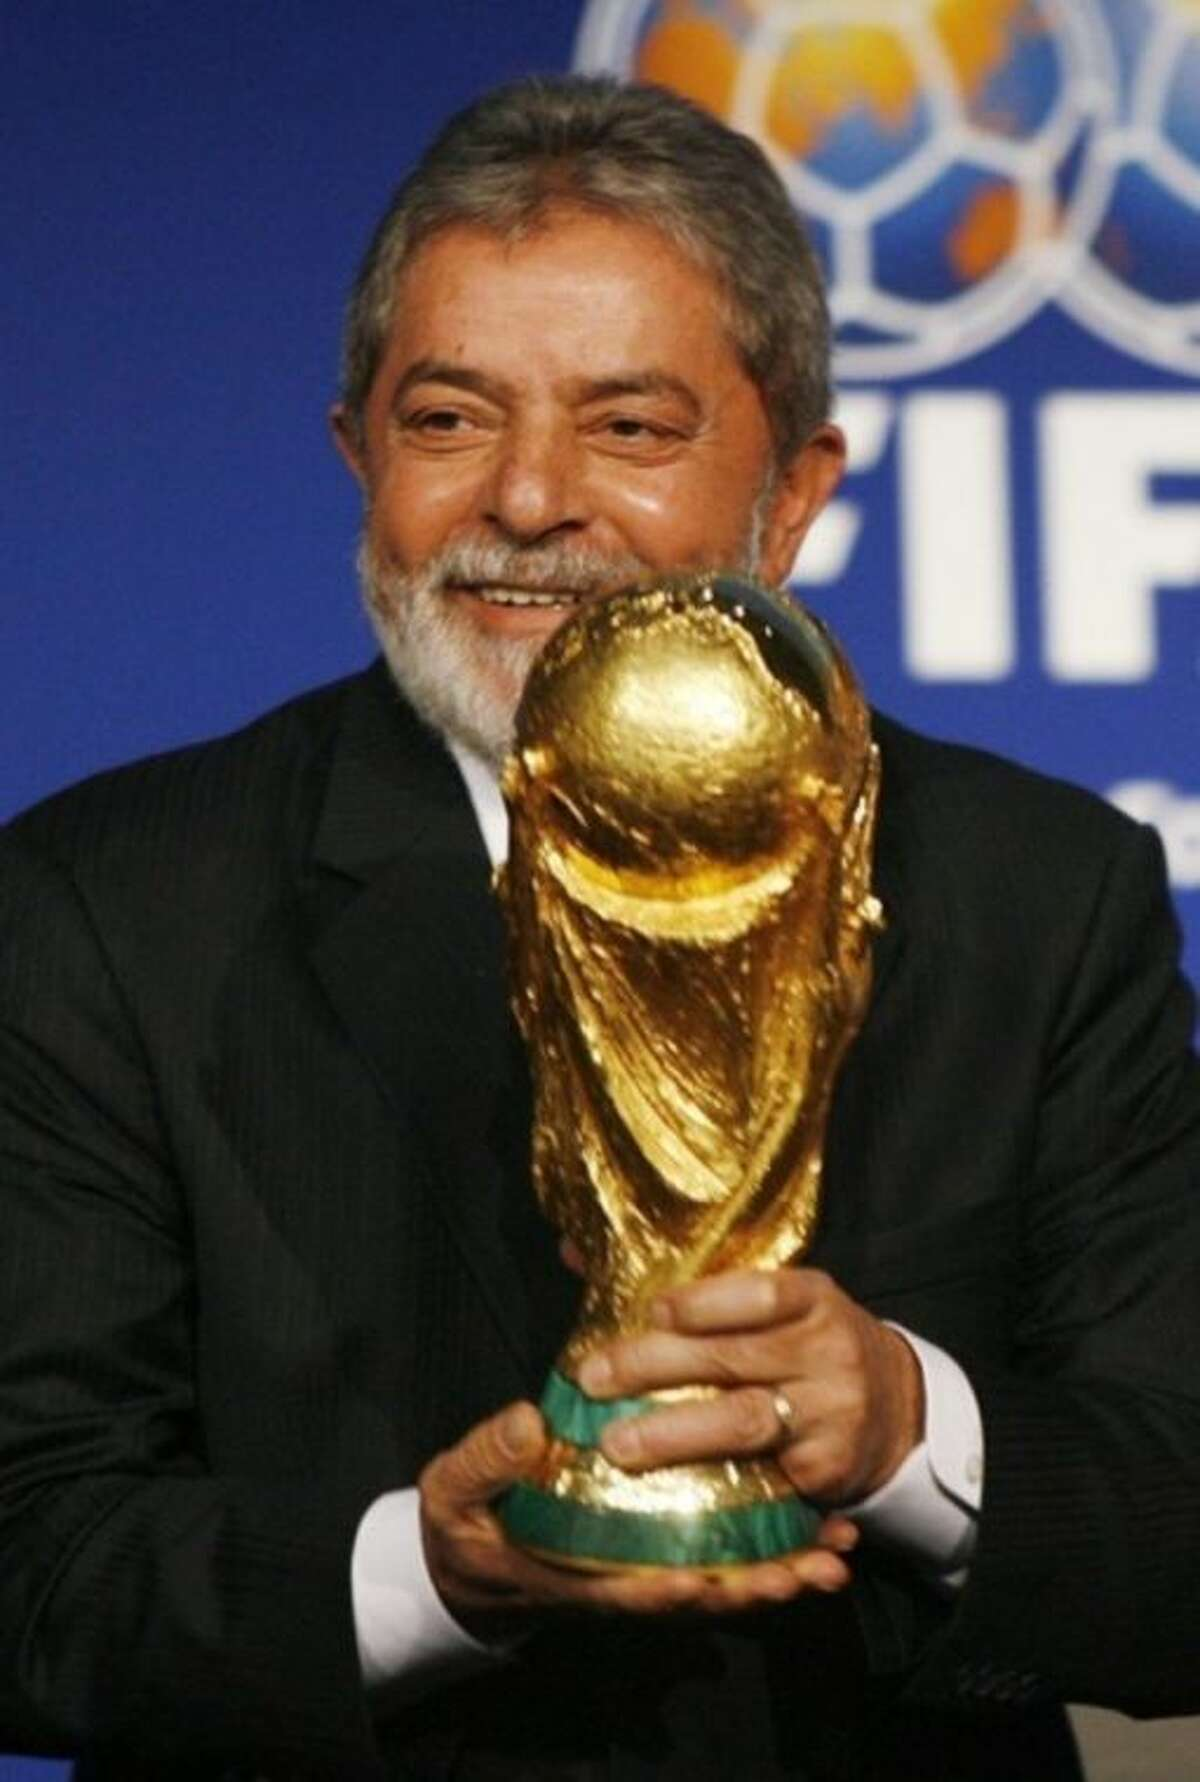 FILE - In this 30 October, 2007, file photo, Brazilian President Lula holds the World Cup Trophy after it was announced that Brazil will host the 2014 Soccer World Cup in Zurich, Switzerland. Lula, the country?'s immensely popular and folksy former leader told the crowd at celebratory ceremony in Zurich that he would return home full of joy but also feel the burden of hosting the world?'s biggest sporting event. The tournament opens June 12 with Brazil facing Croatia in the opening match. (KEYSTONE/Steffen Schmidt, File)